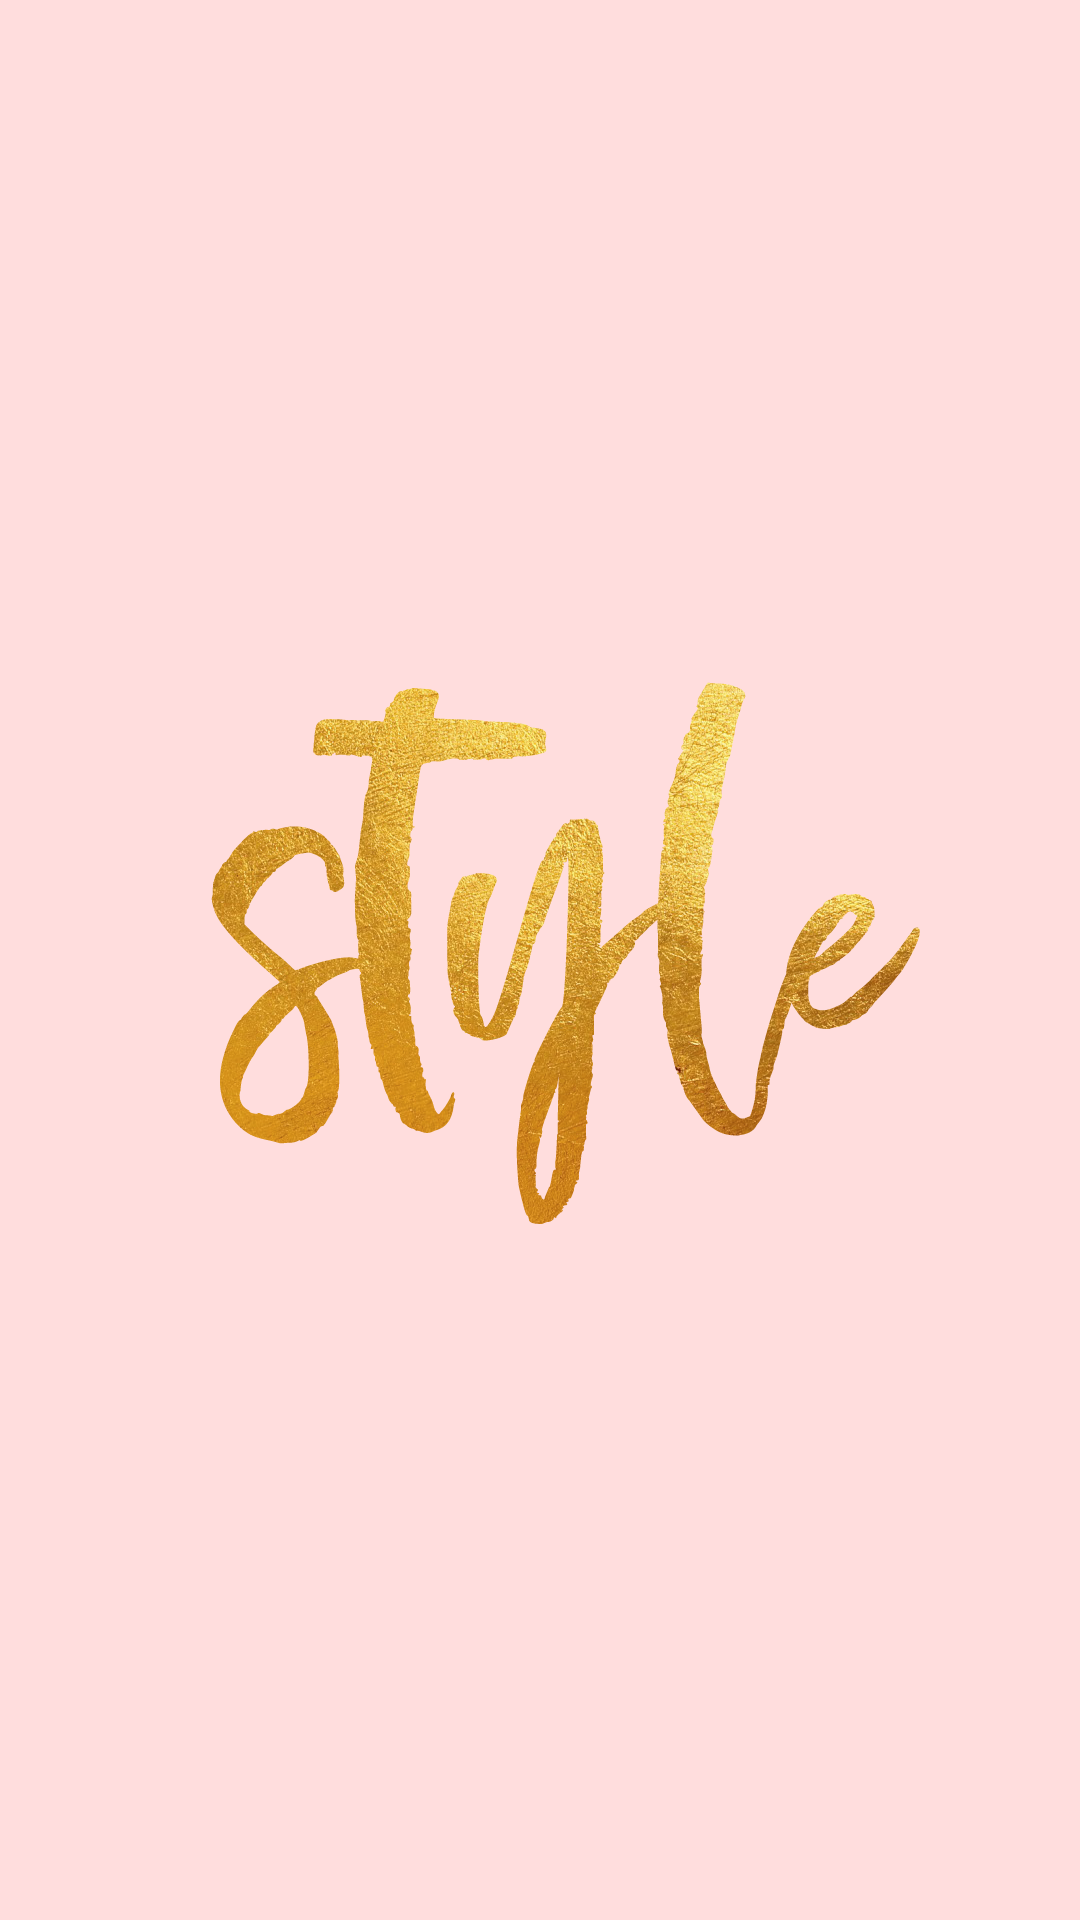 Insta Story Cover Icon Pink Gold Instagram Stories Highlight Instagram Fashion Blogger Beauty Makeup Blog Vlog Fitness Girl Boss Gym Ebook Instagram Branding Instagram Story Story Highlights